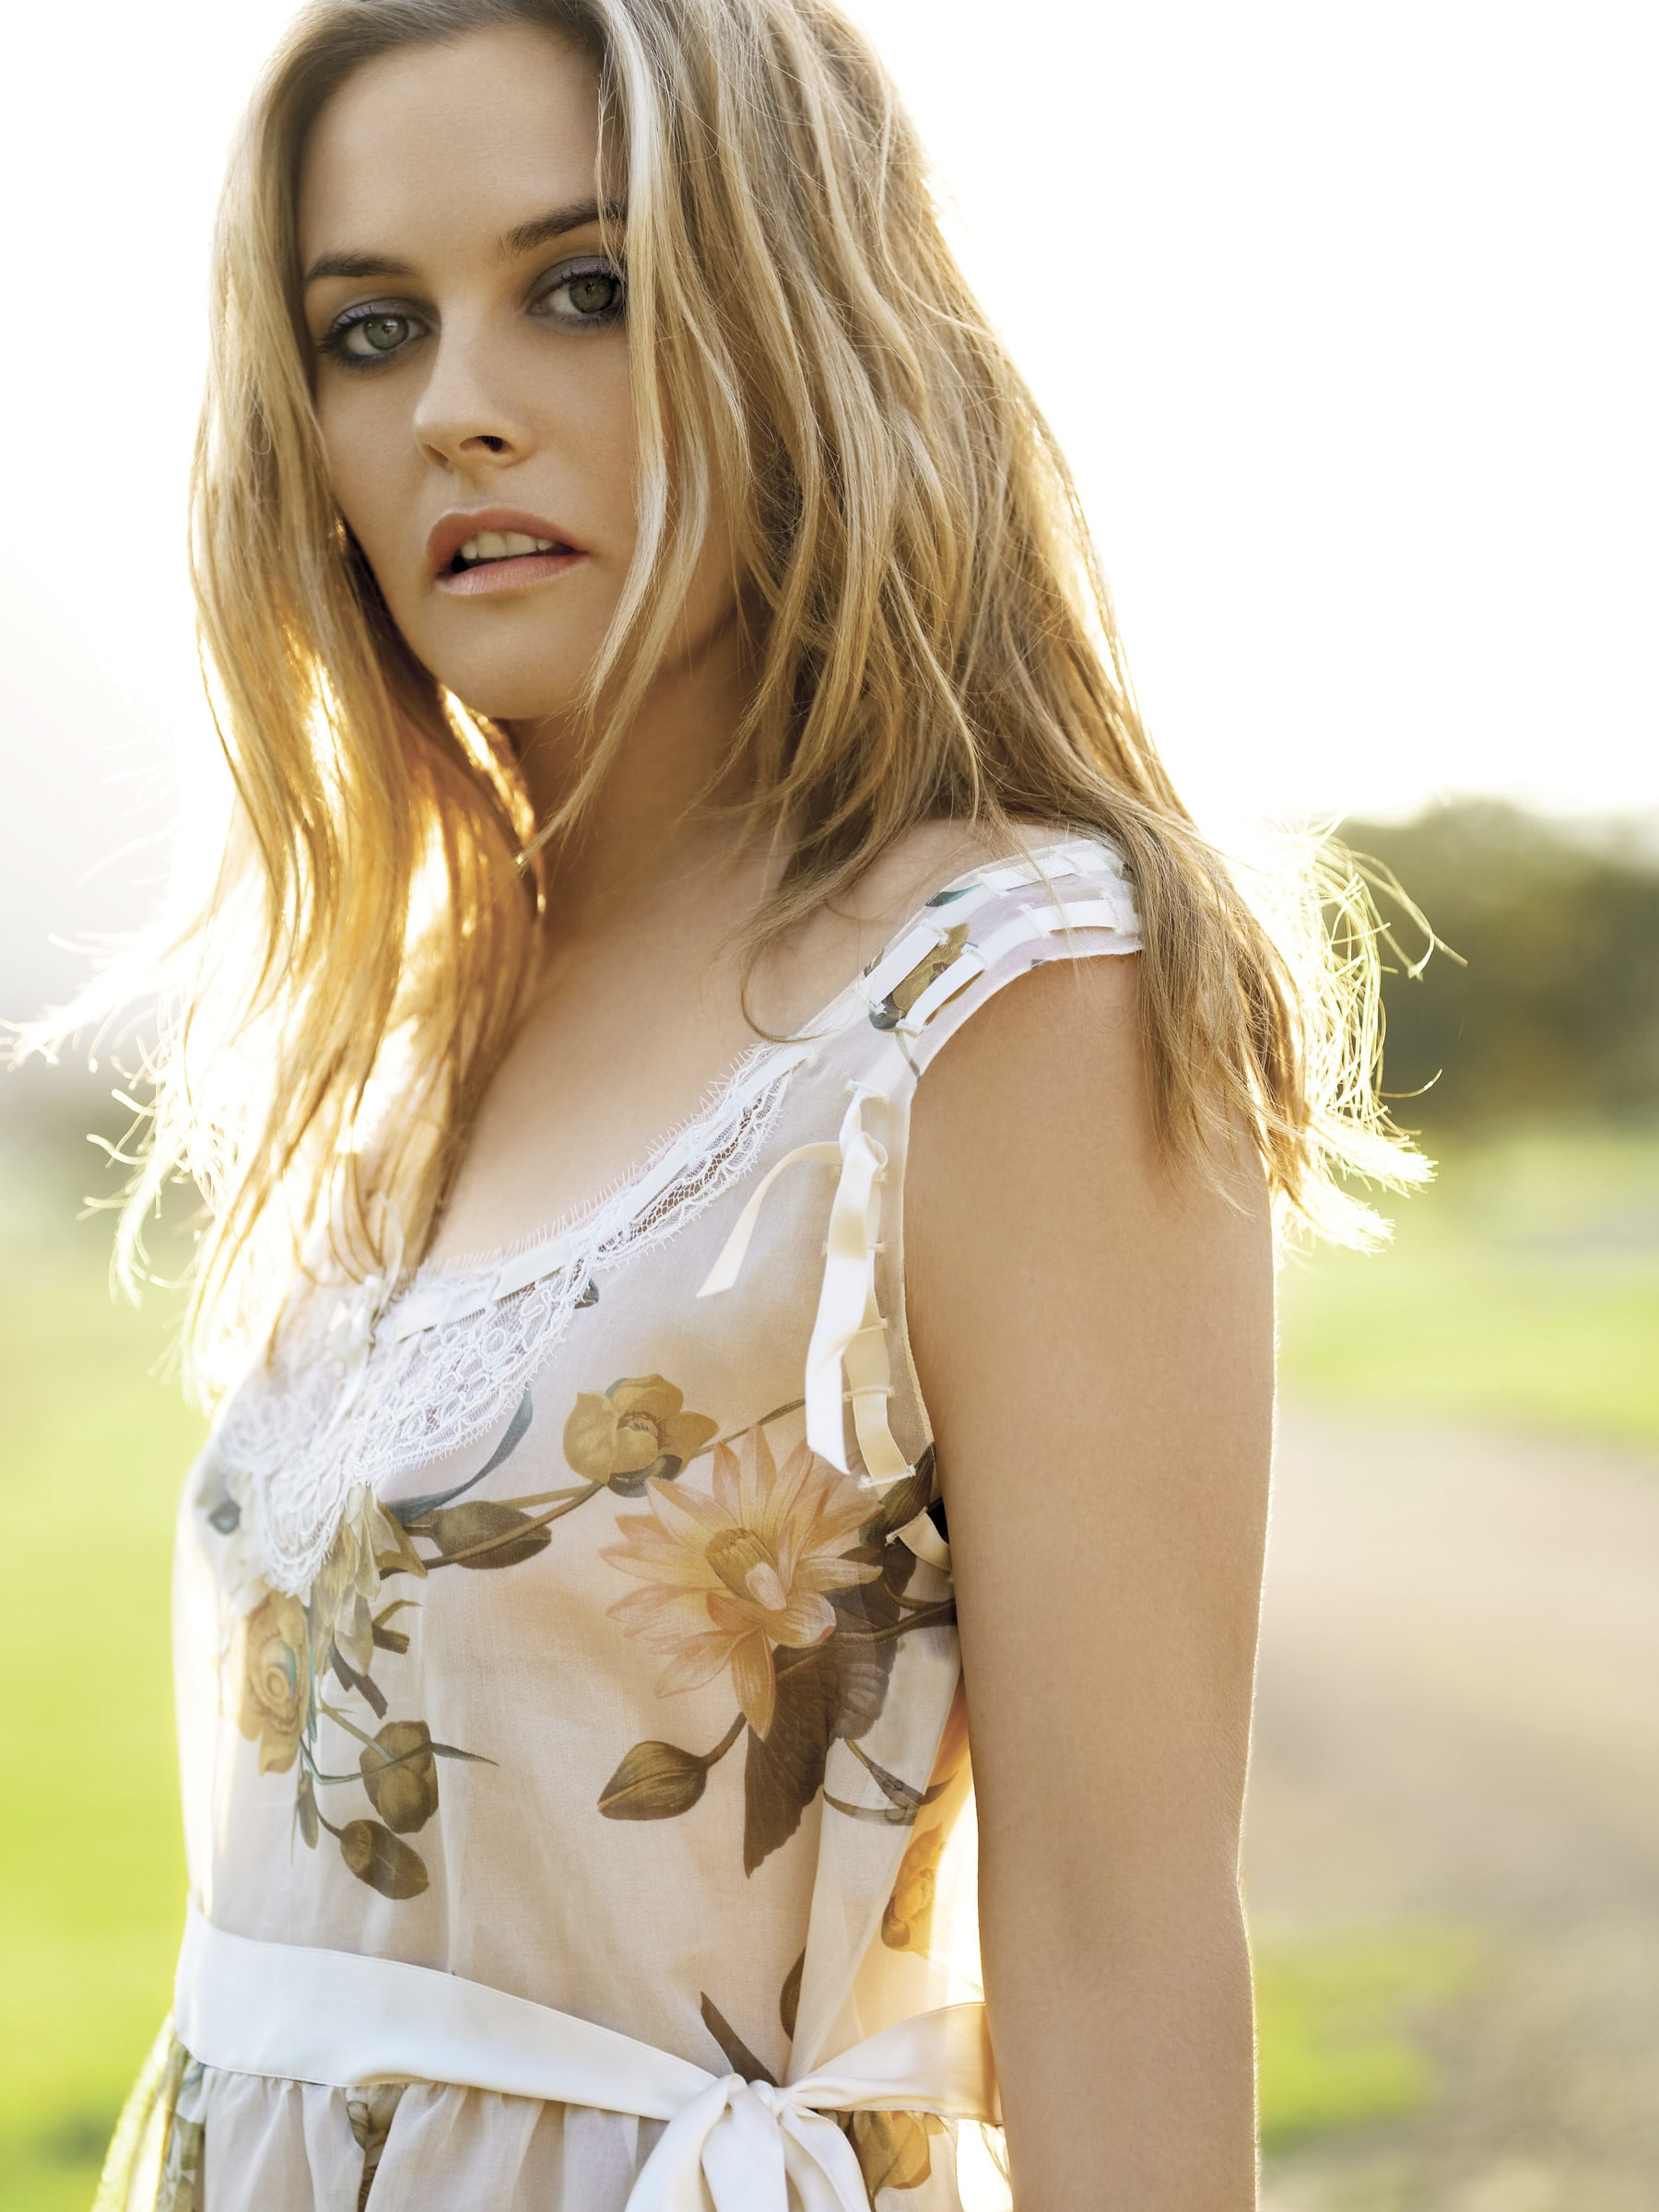 Alicia Silverstone For mobile